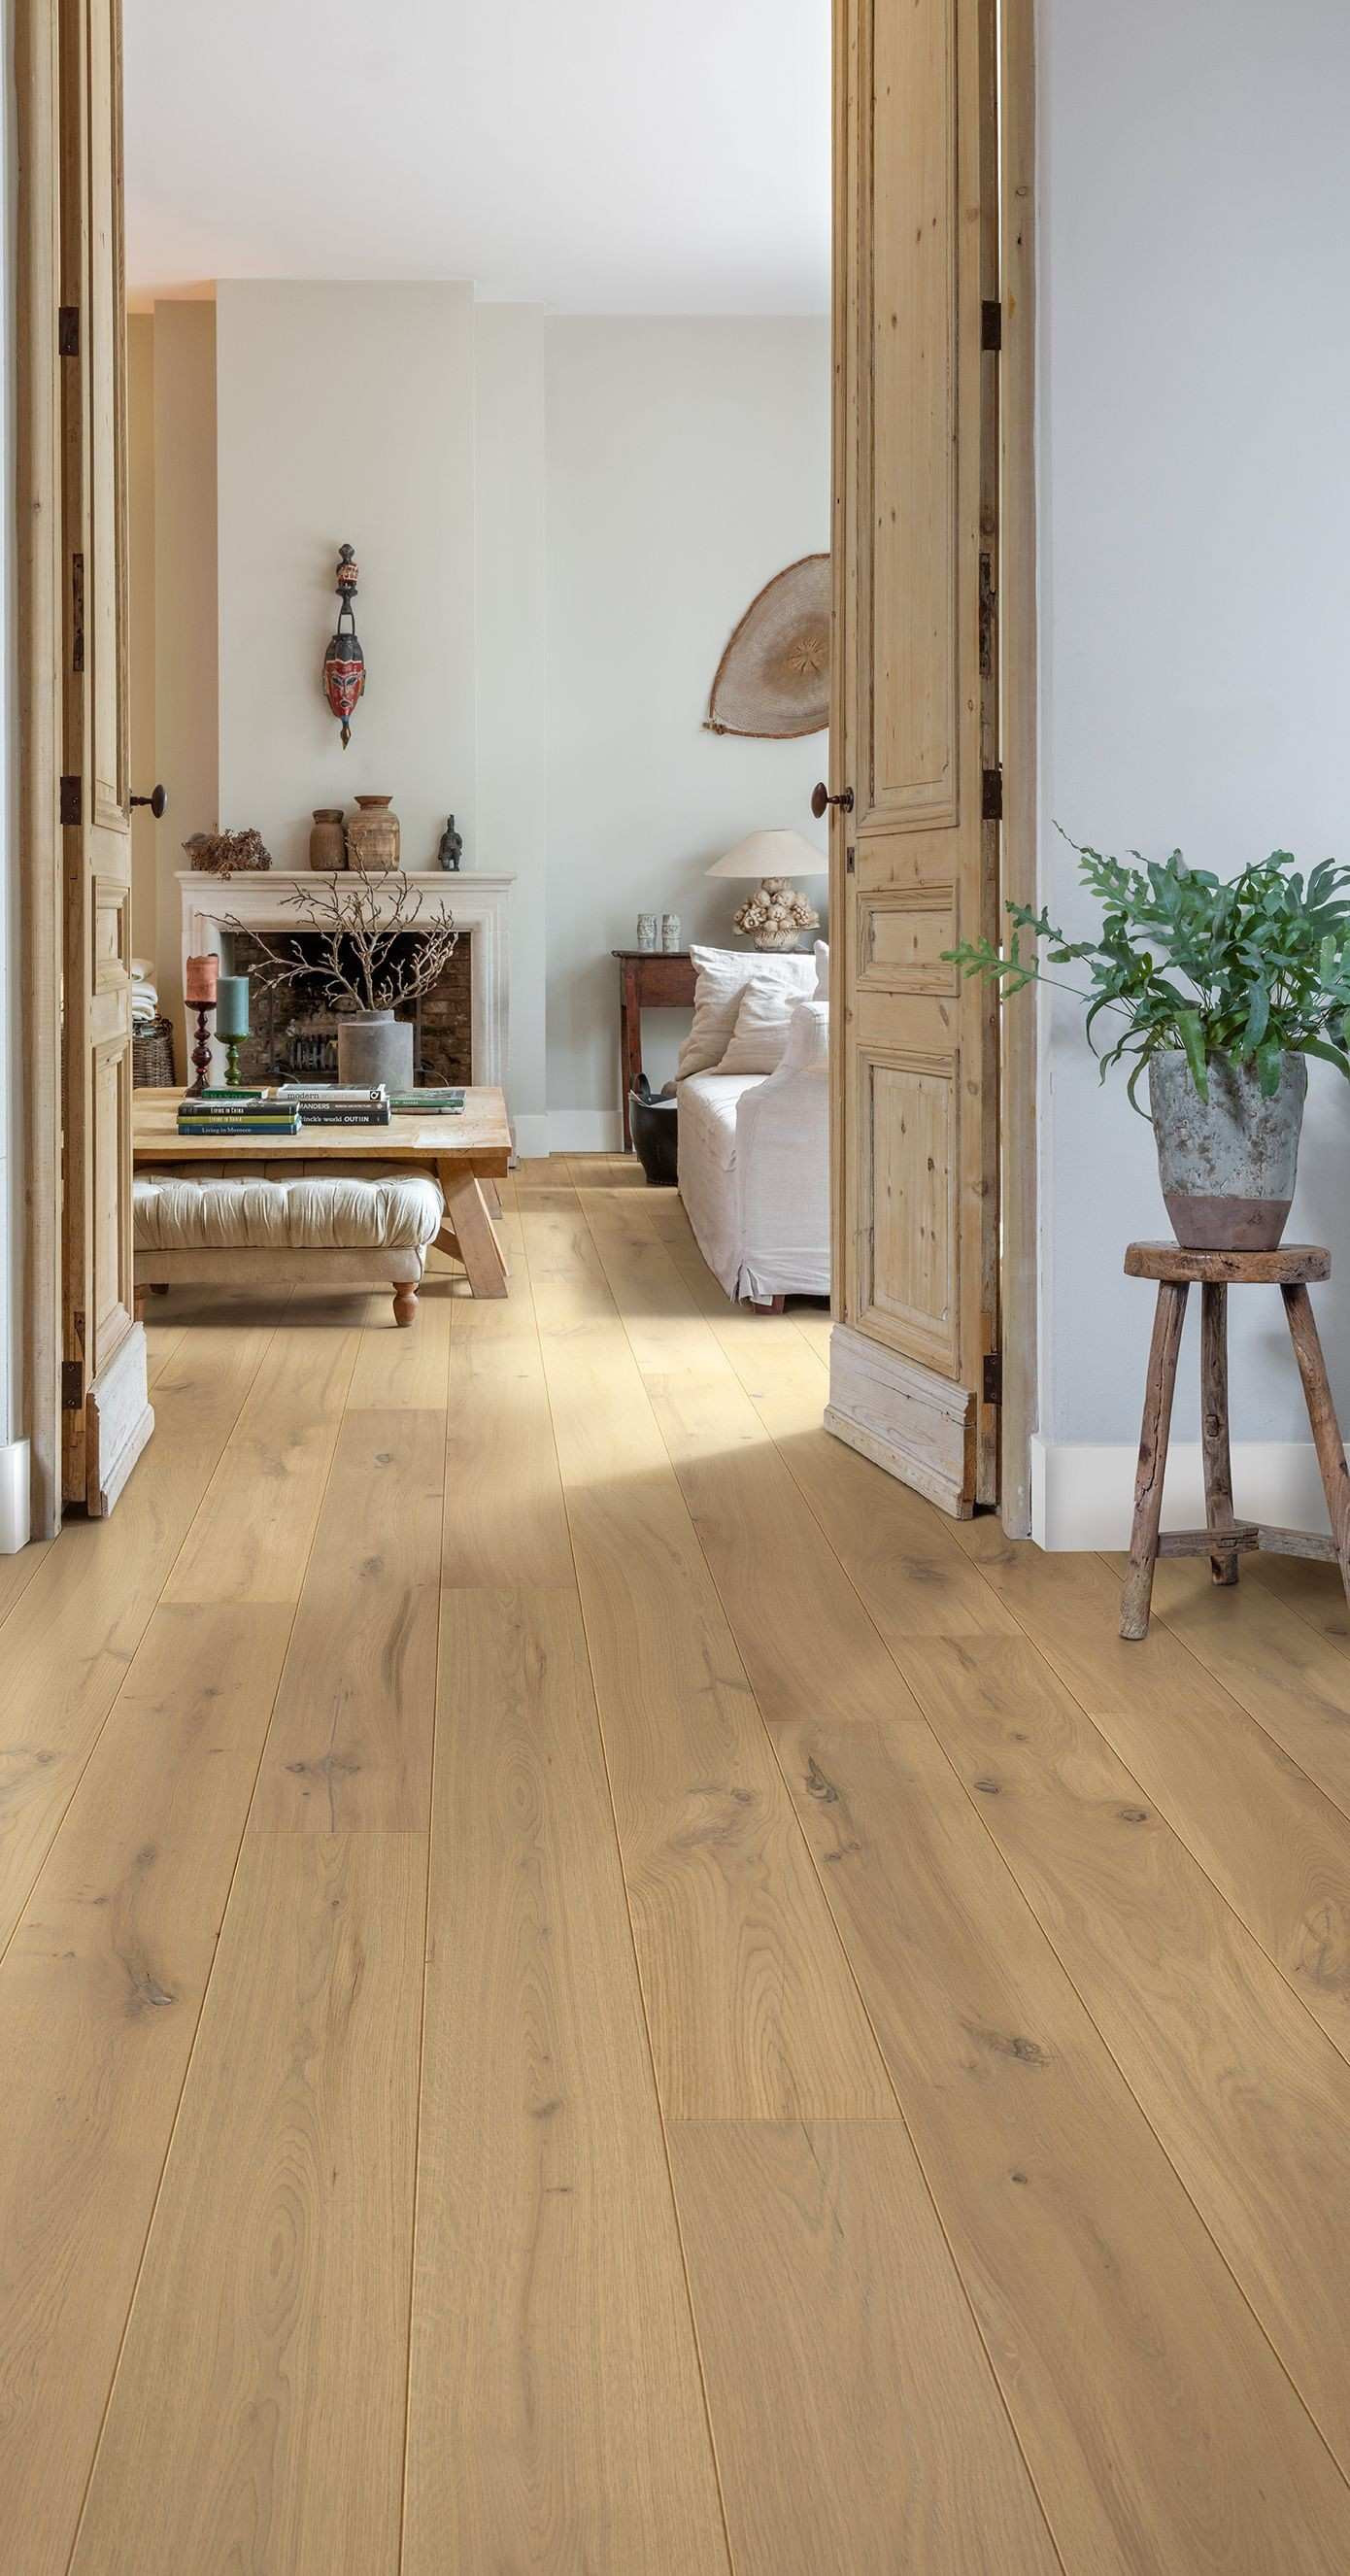 pros and cons of acacia hardwood flooring of 30 luxury homemade laminate floor cleaner swansonsfuneralhomes com pertaining to homemade laminate floor cleaner awesome quick step laminate new decorating an open floor plan living room